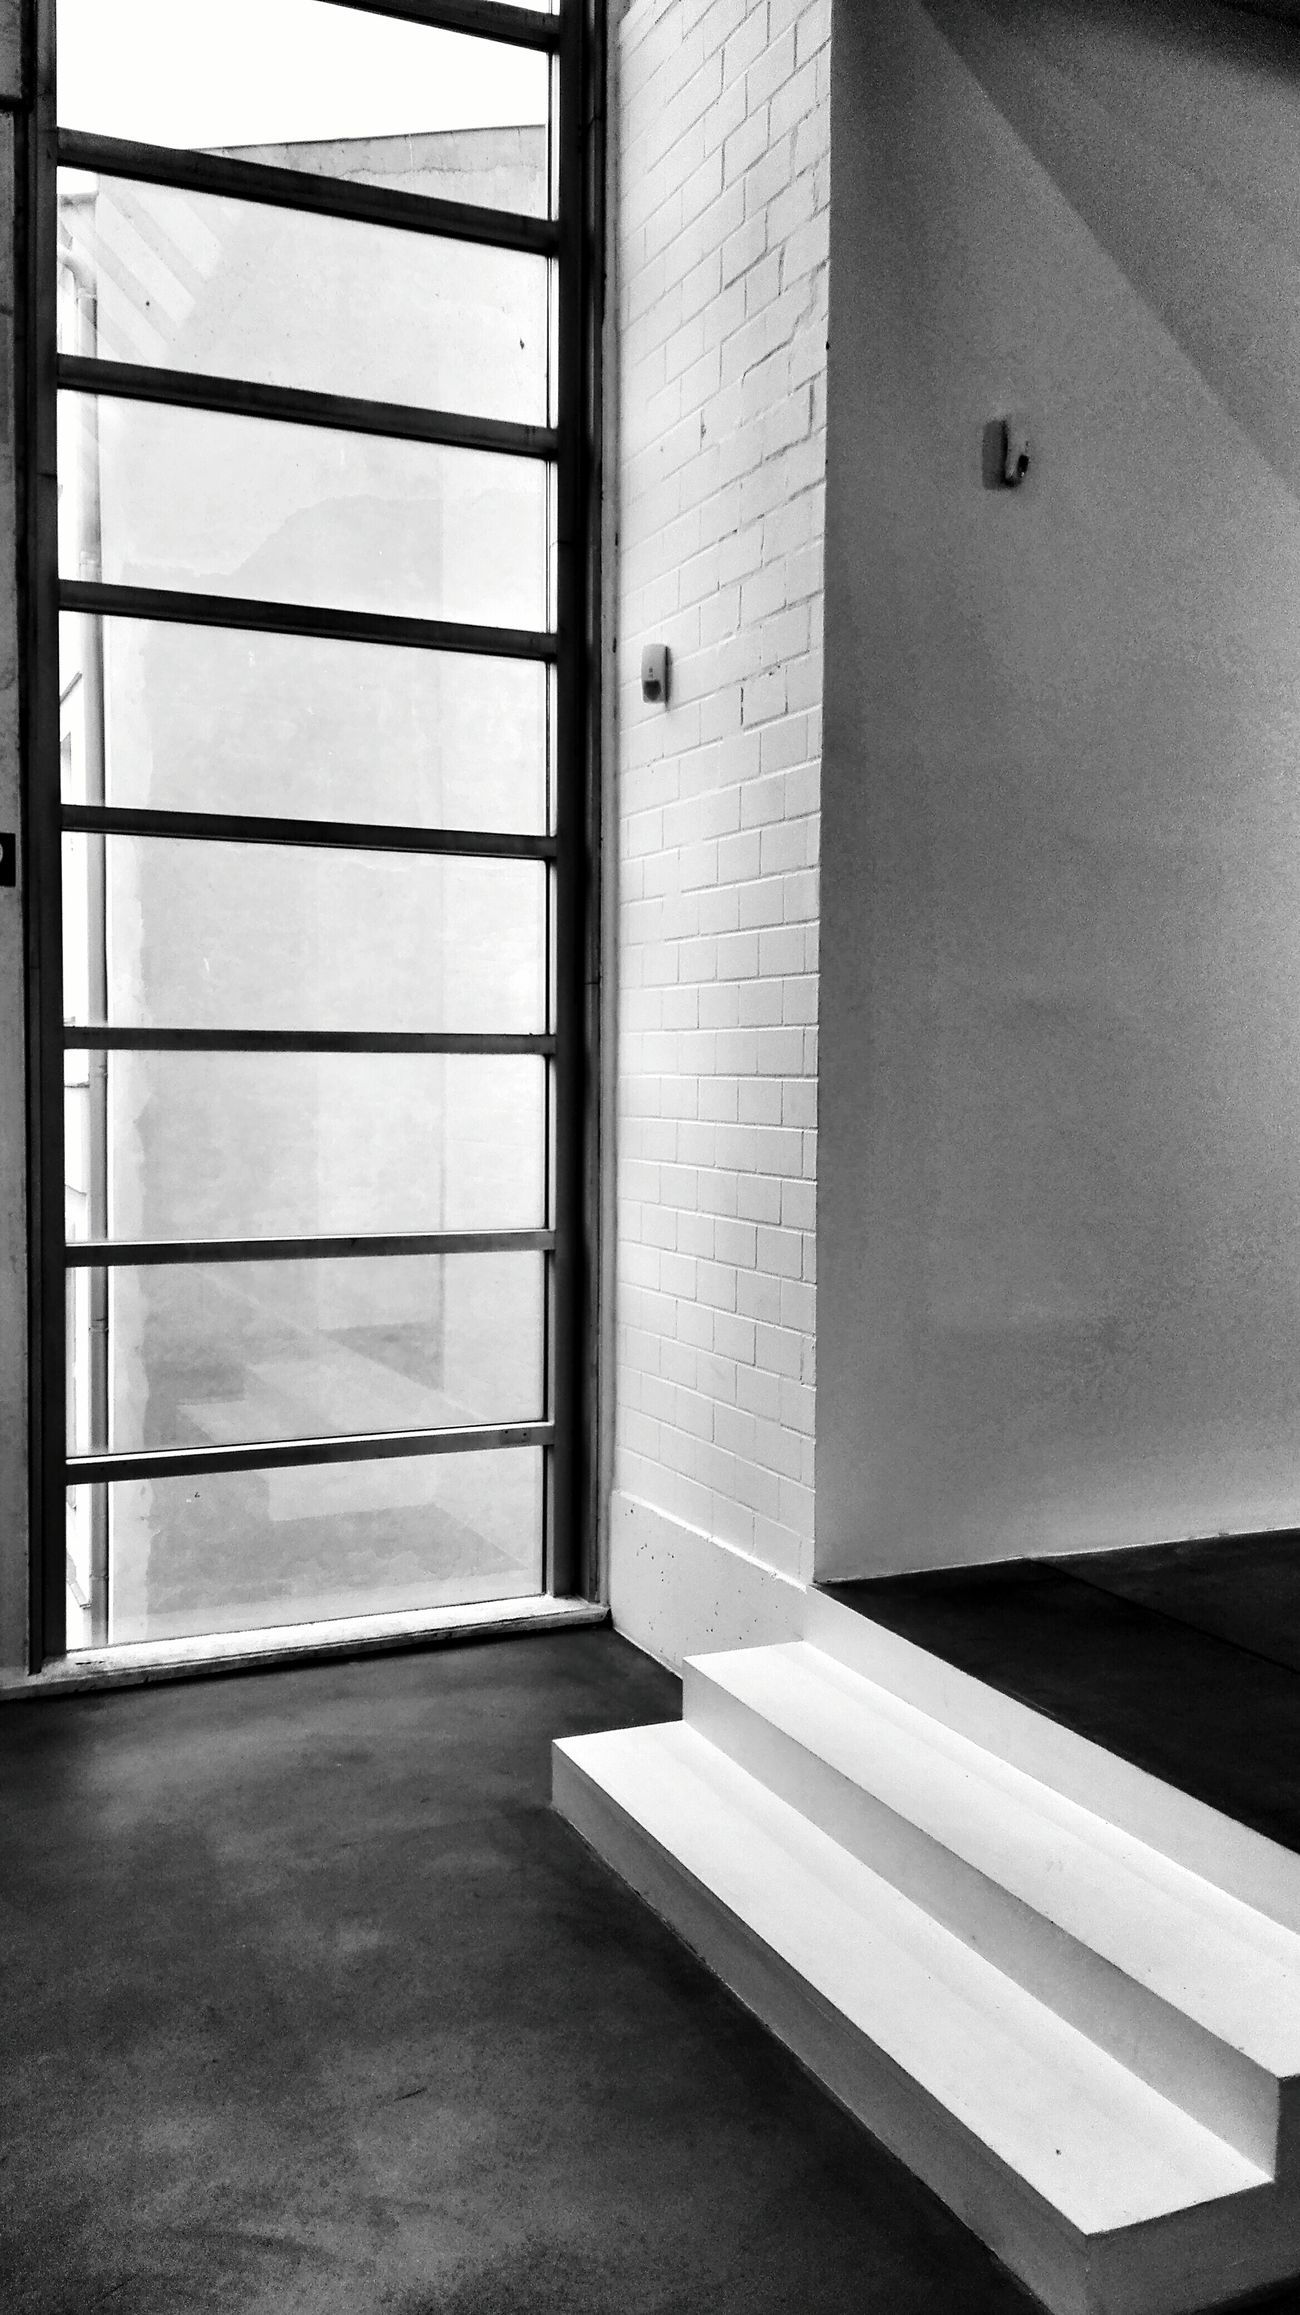 Black And White Large Windows Art Gallery Minimalism